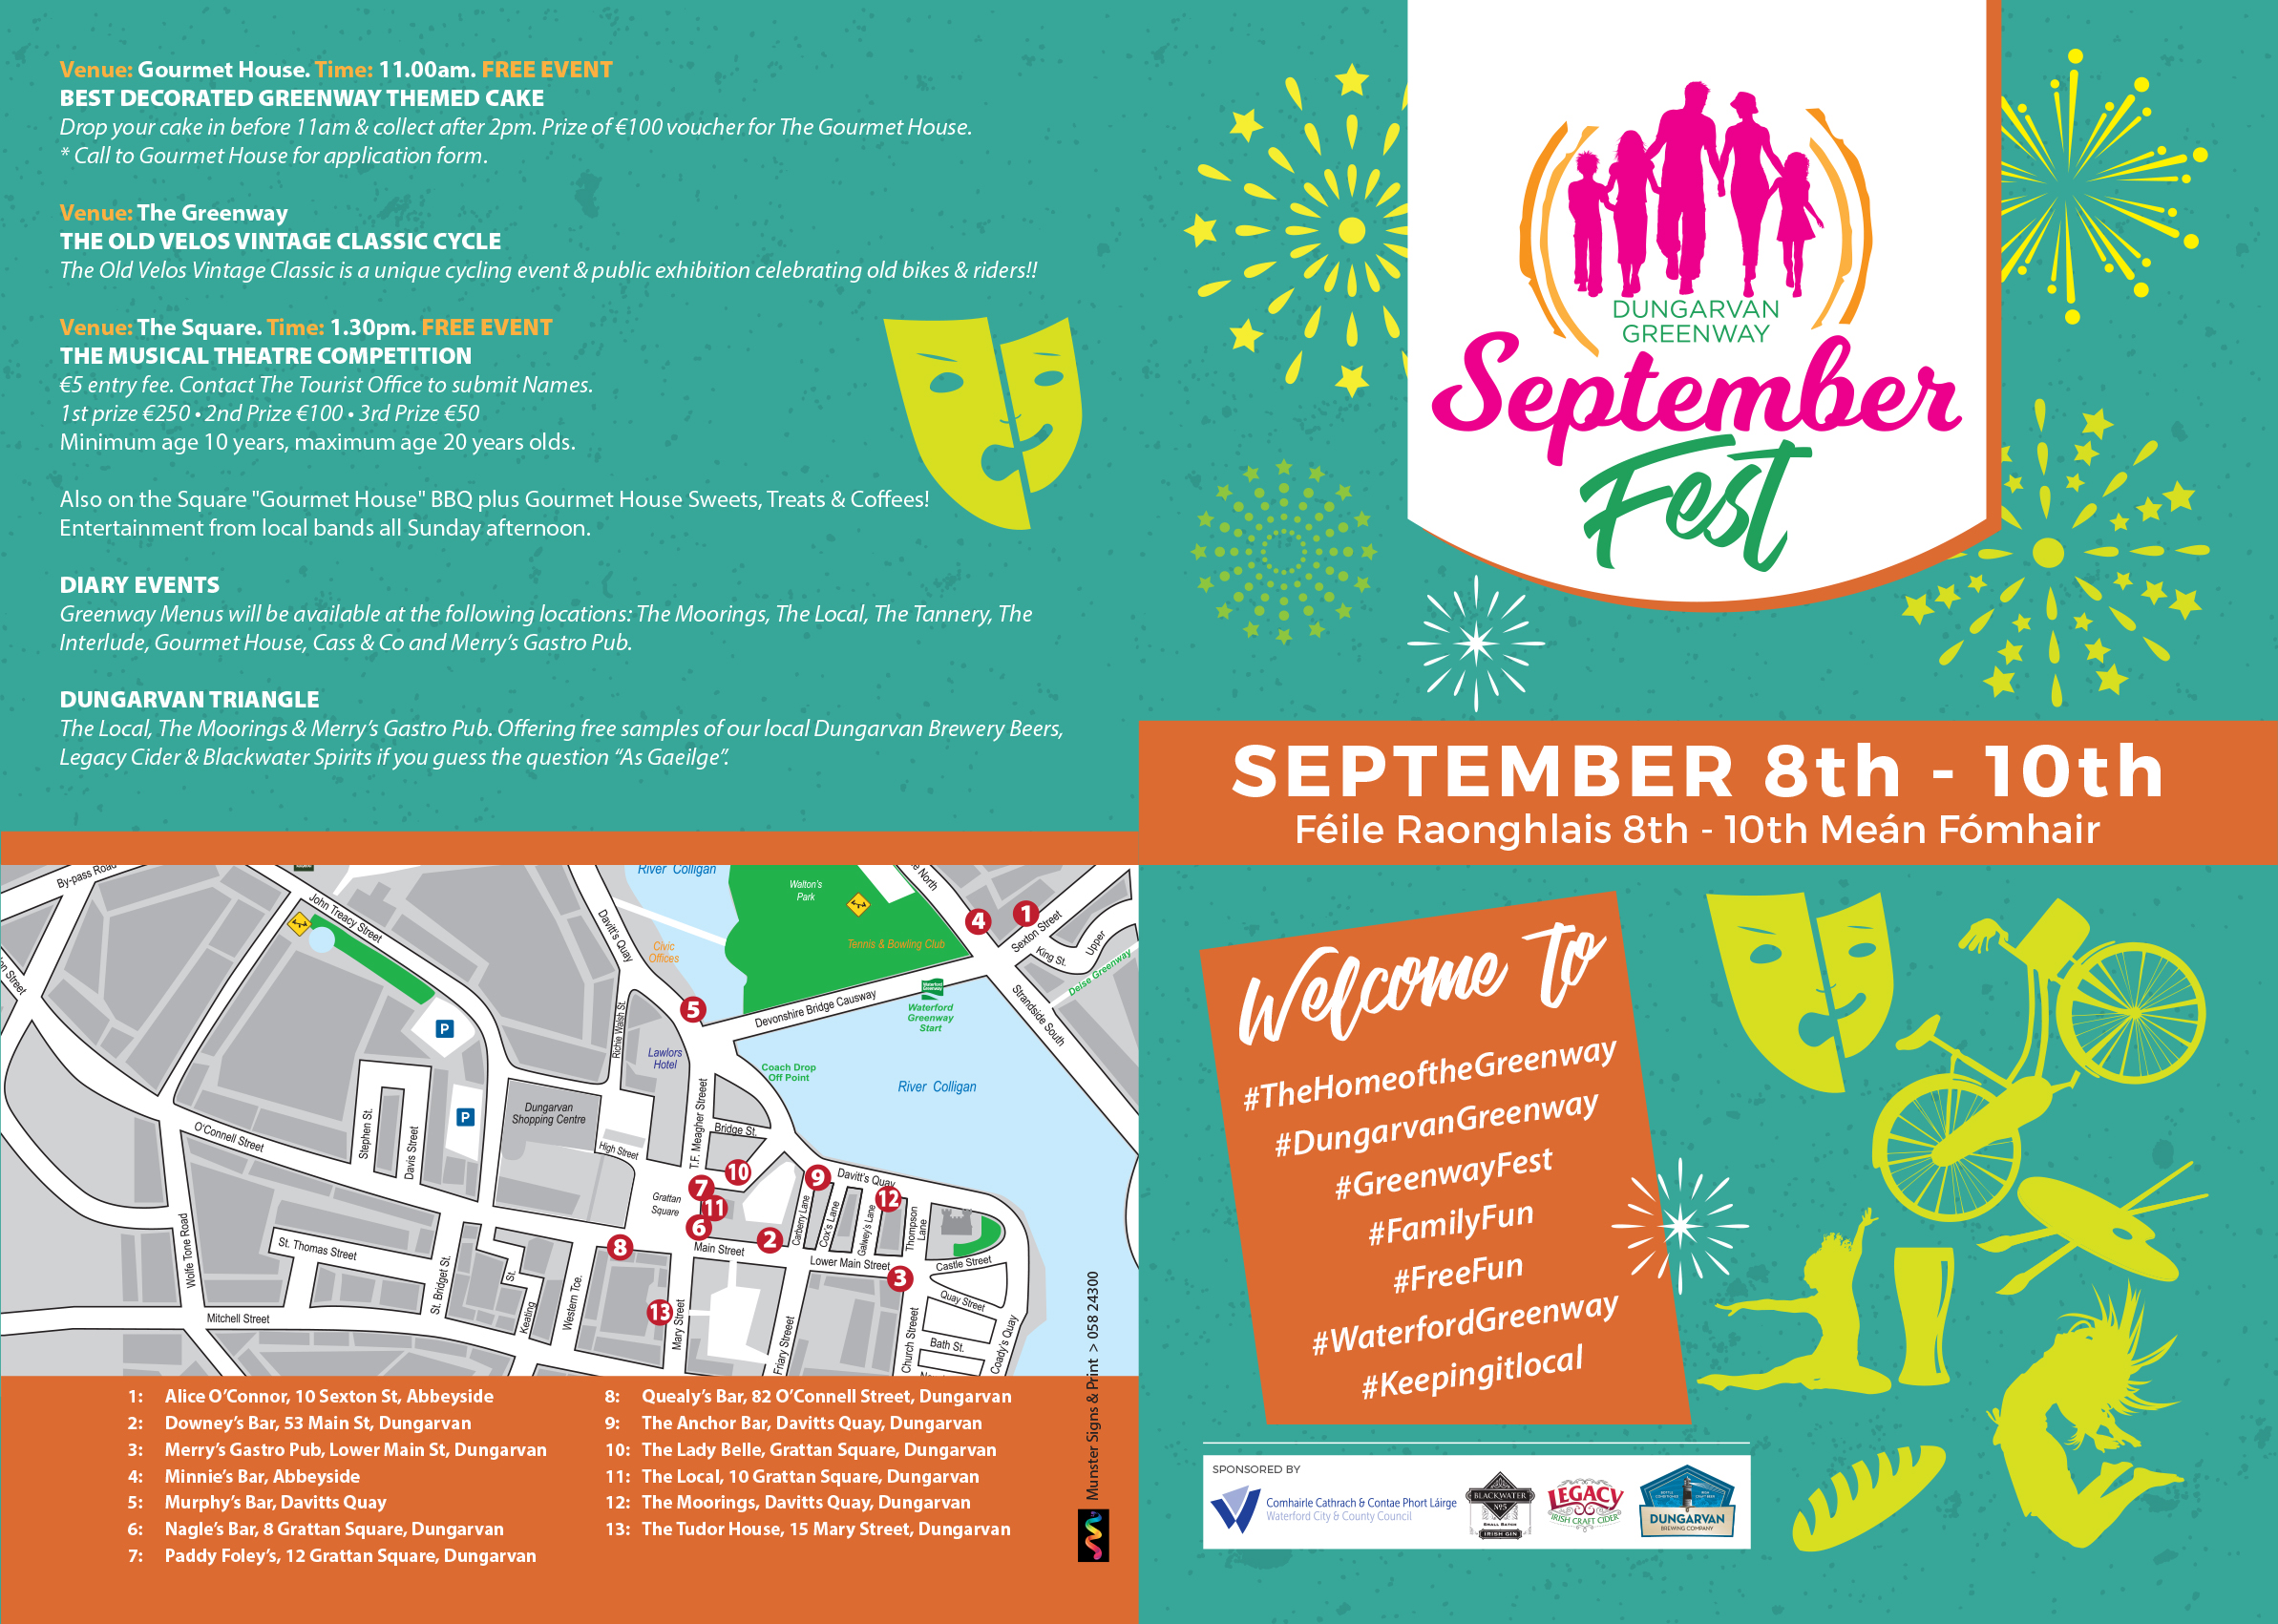 Hear all about the Dungarvan Greenway September Fest